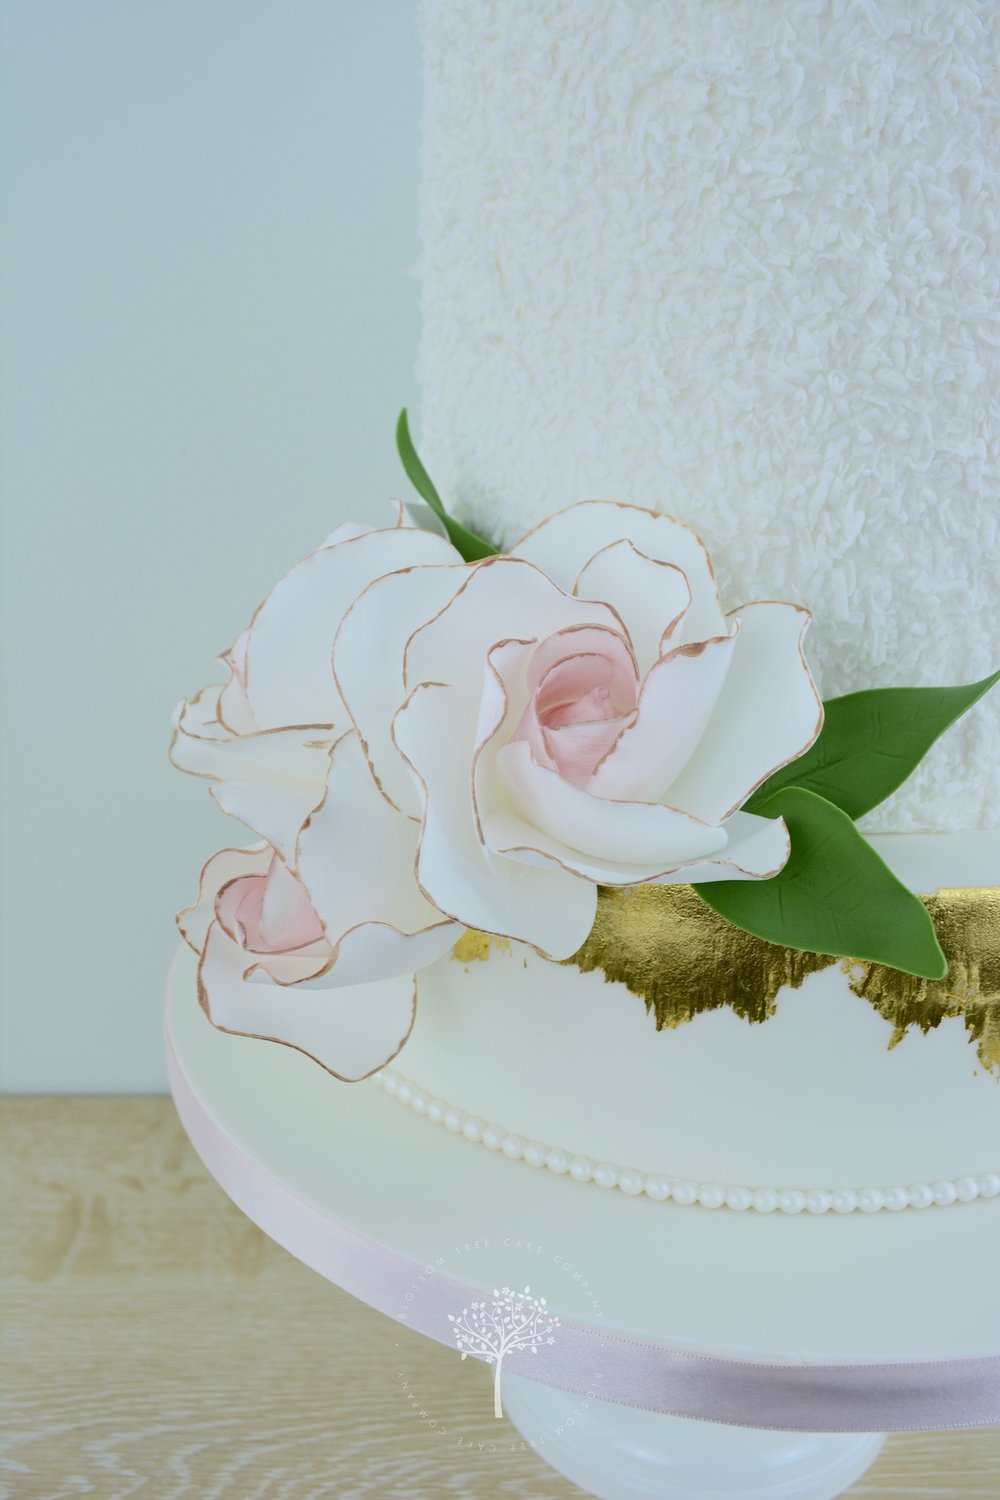 Peony and Eucalyptus wedding cake by Blossom Tree Cake Company Harrogate North Yorkshire - dotted icing.jpg